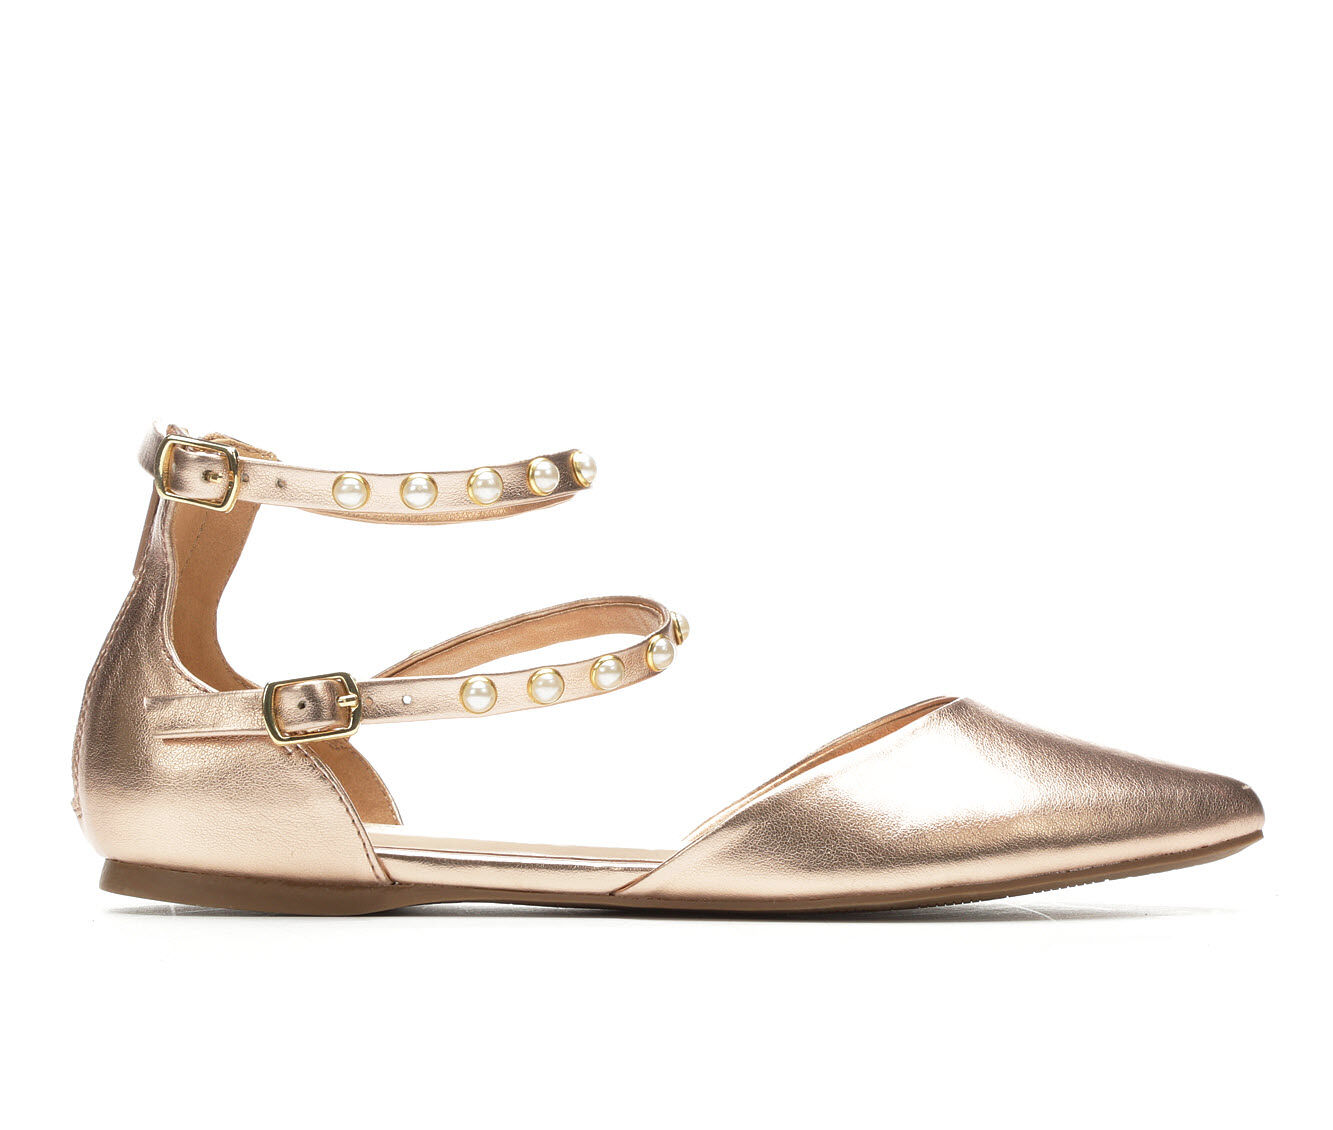 outlet reliable Women's Y-Not Pearl Flats clearance best prices best sale classic online buy cheap for sale 8REXriW